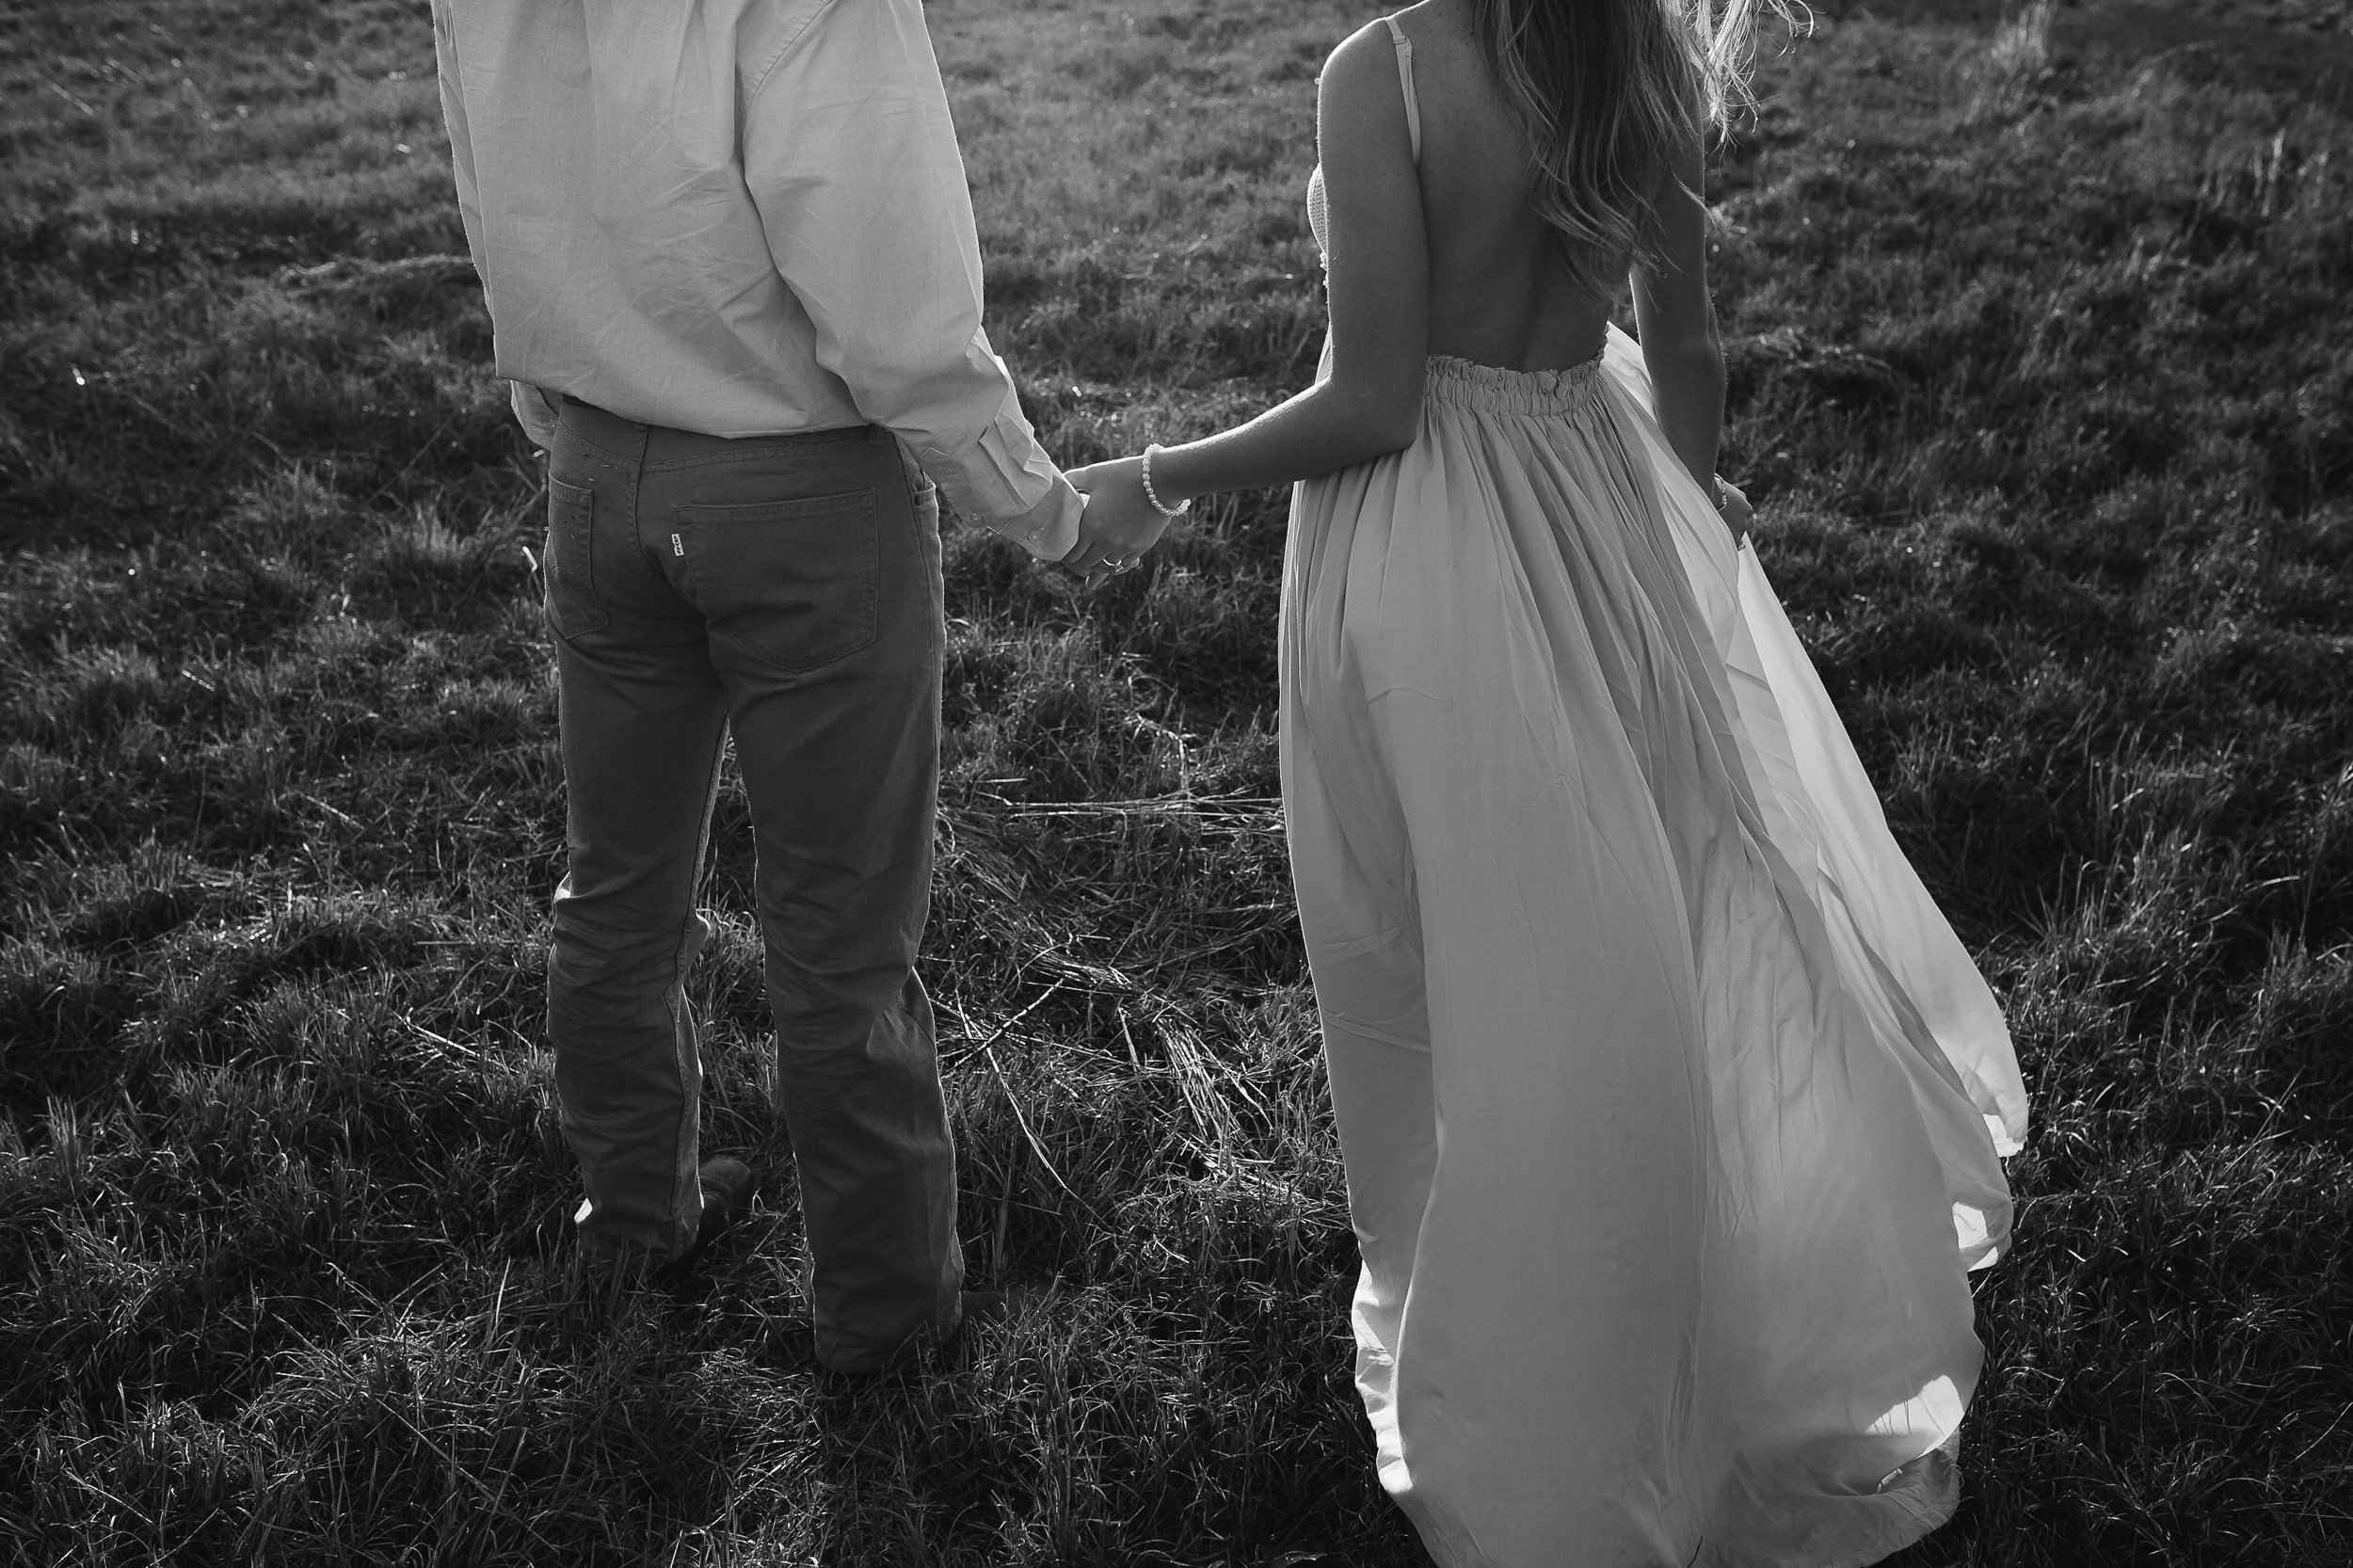 memphis-wedding-photographer-southern-engagement-pictures-cassie-cook-photography